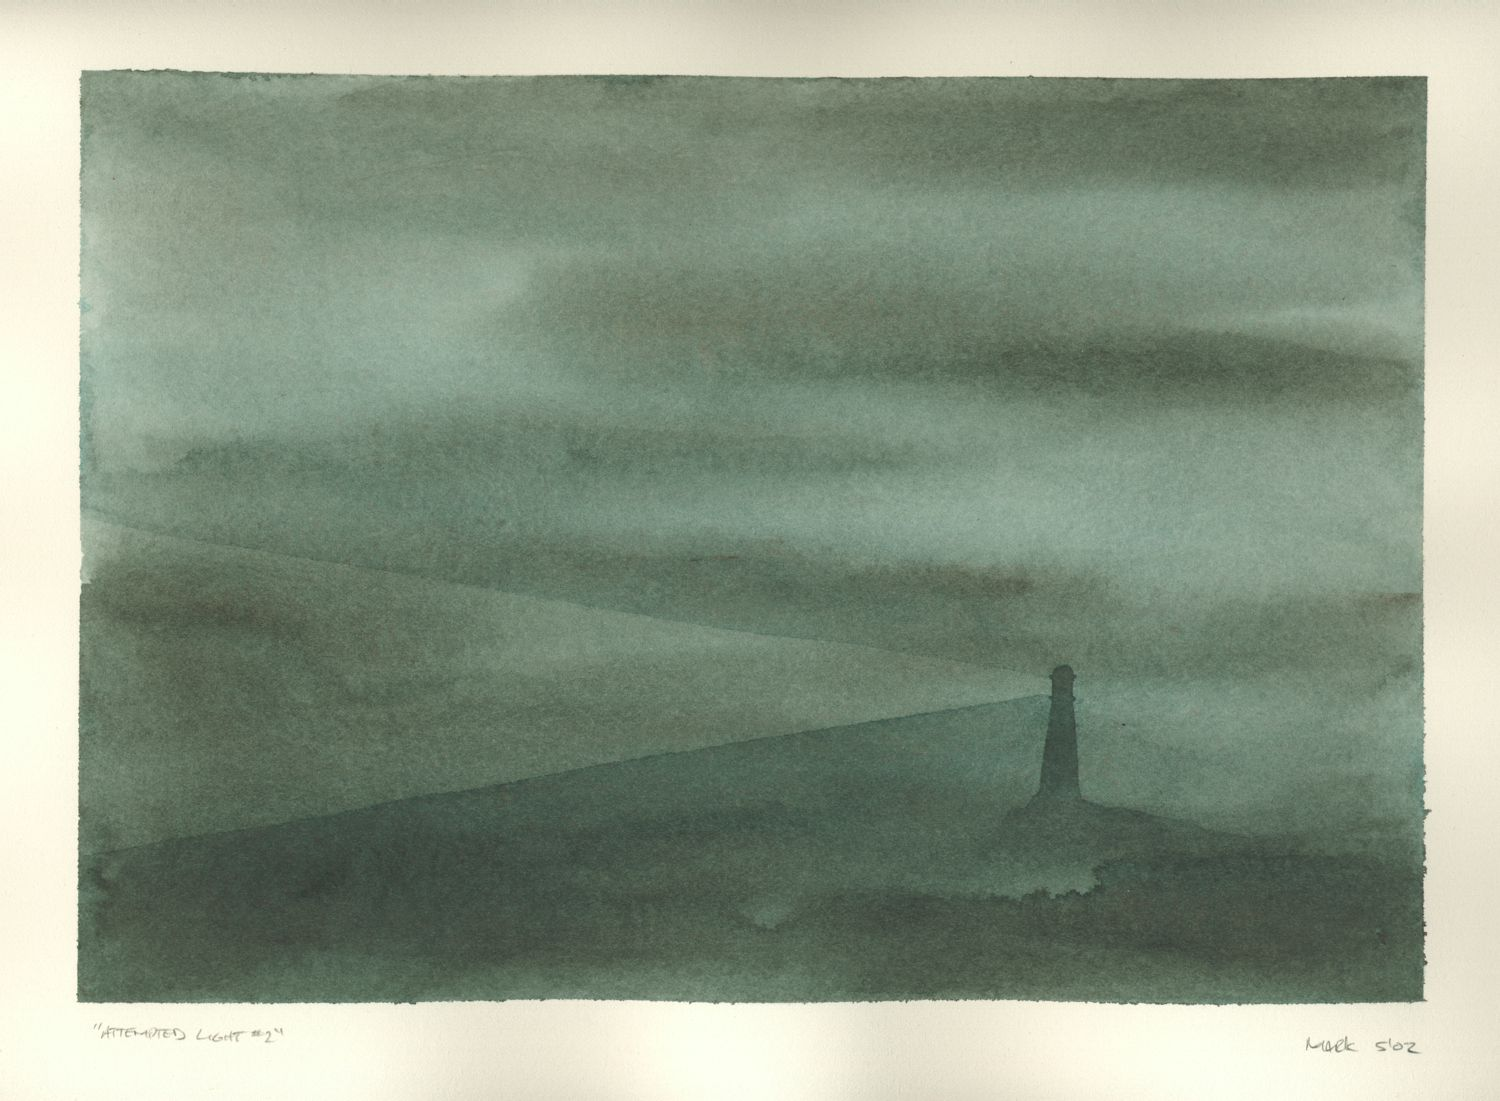 Attempted Lighthouse #2